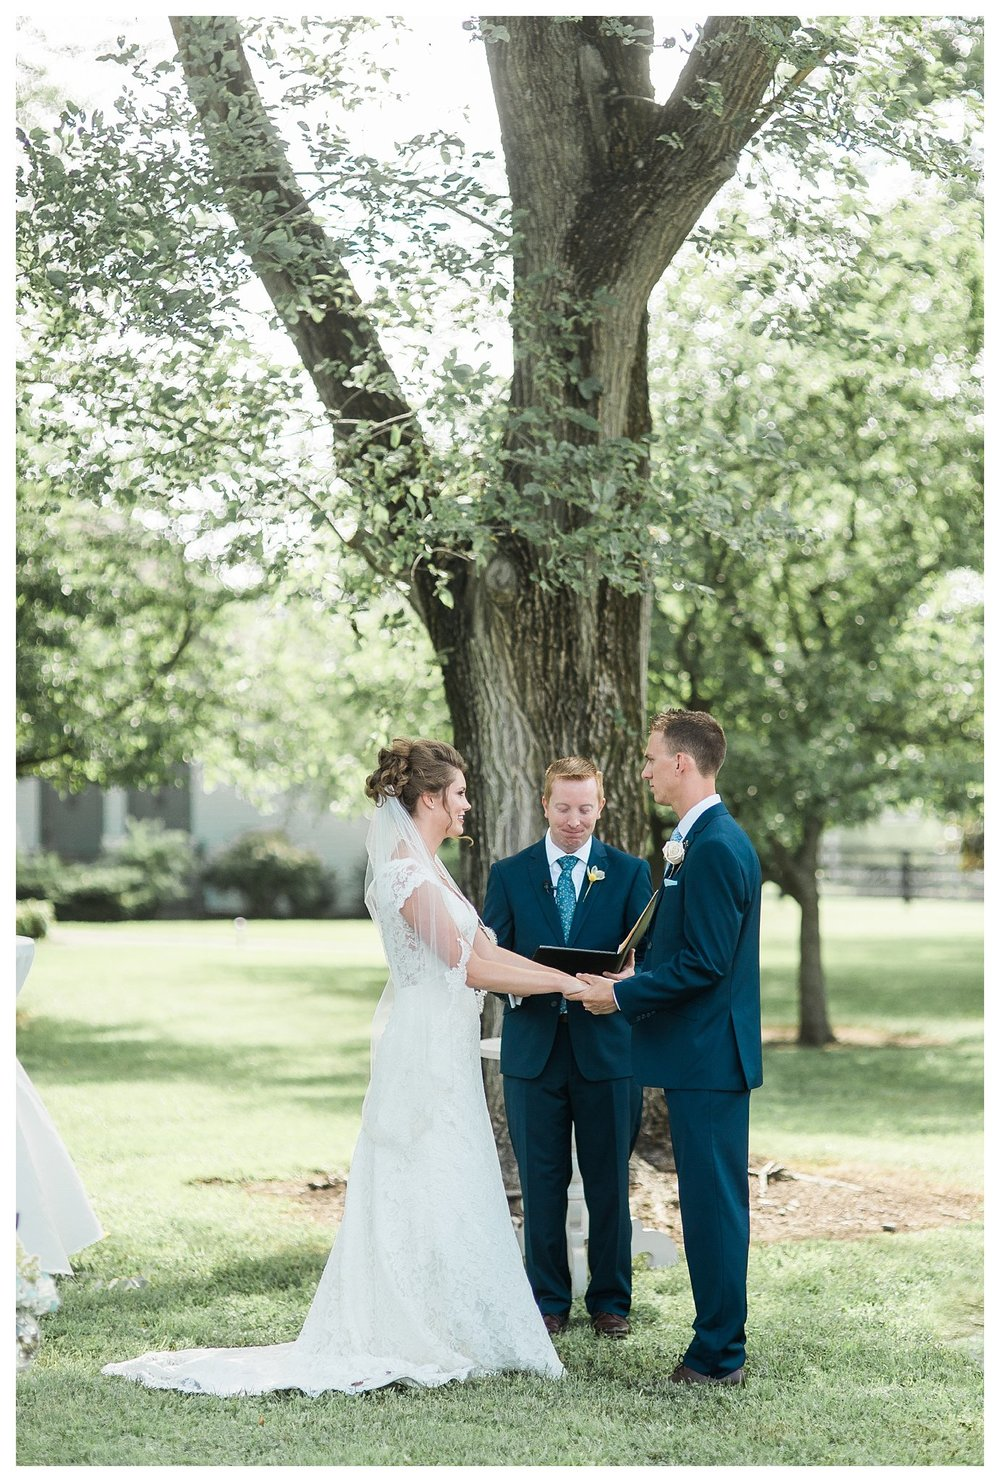 richwood-on-the-river-everleigh-photography-roby-and-tabitha-foree-wedding-51